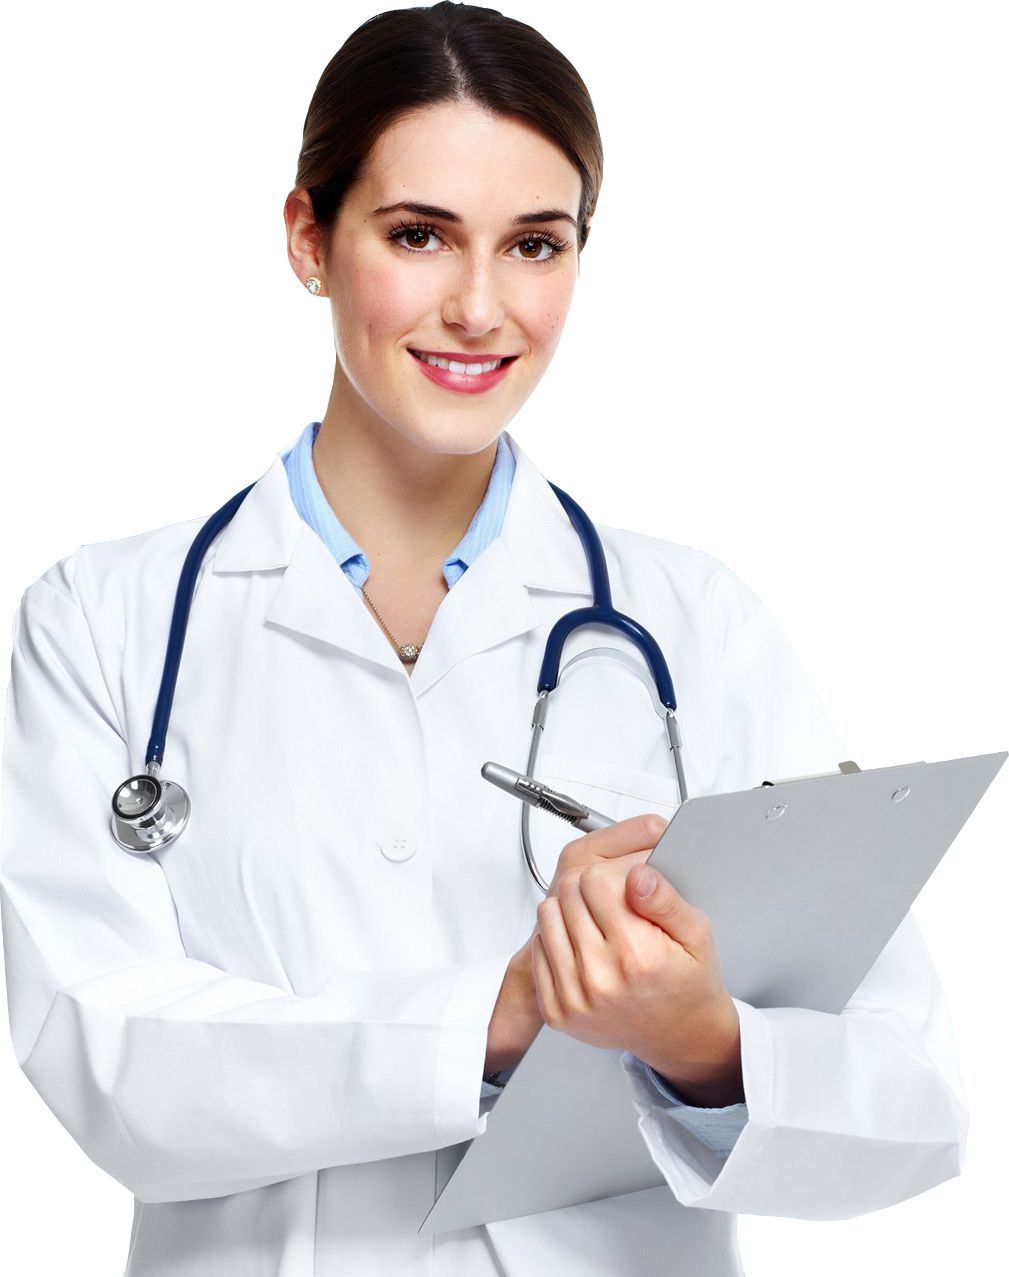 Nurse walking png. Doctor images free download